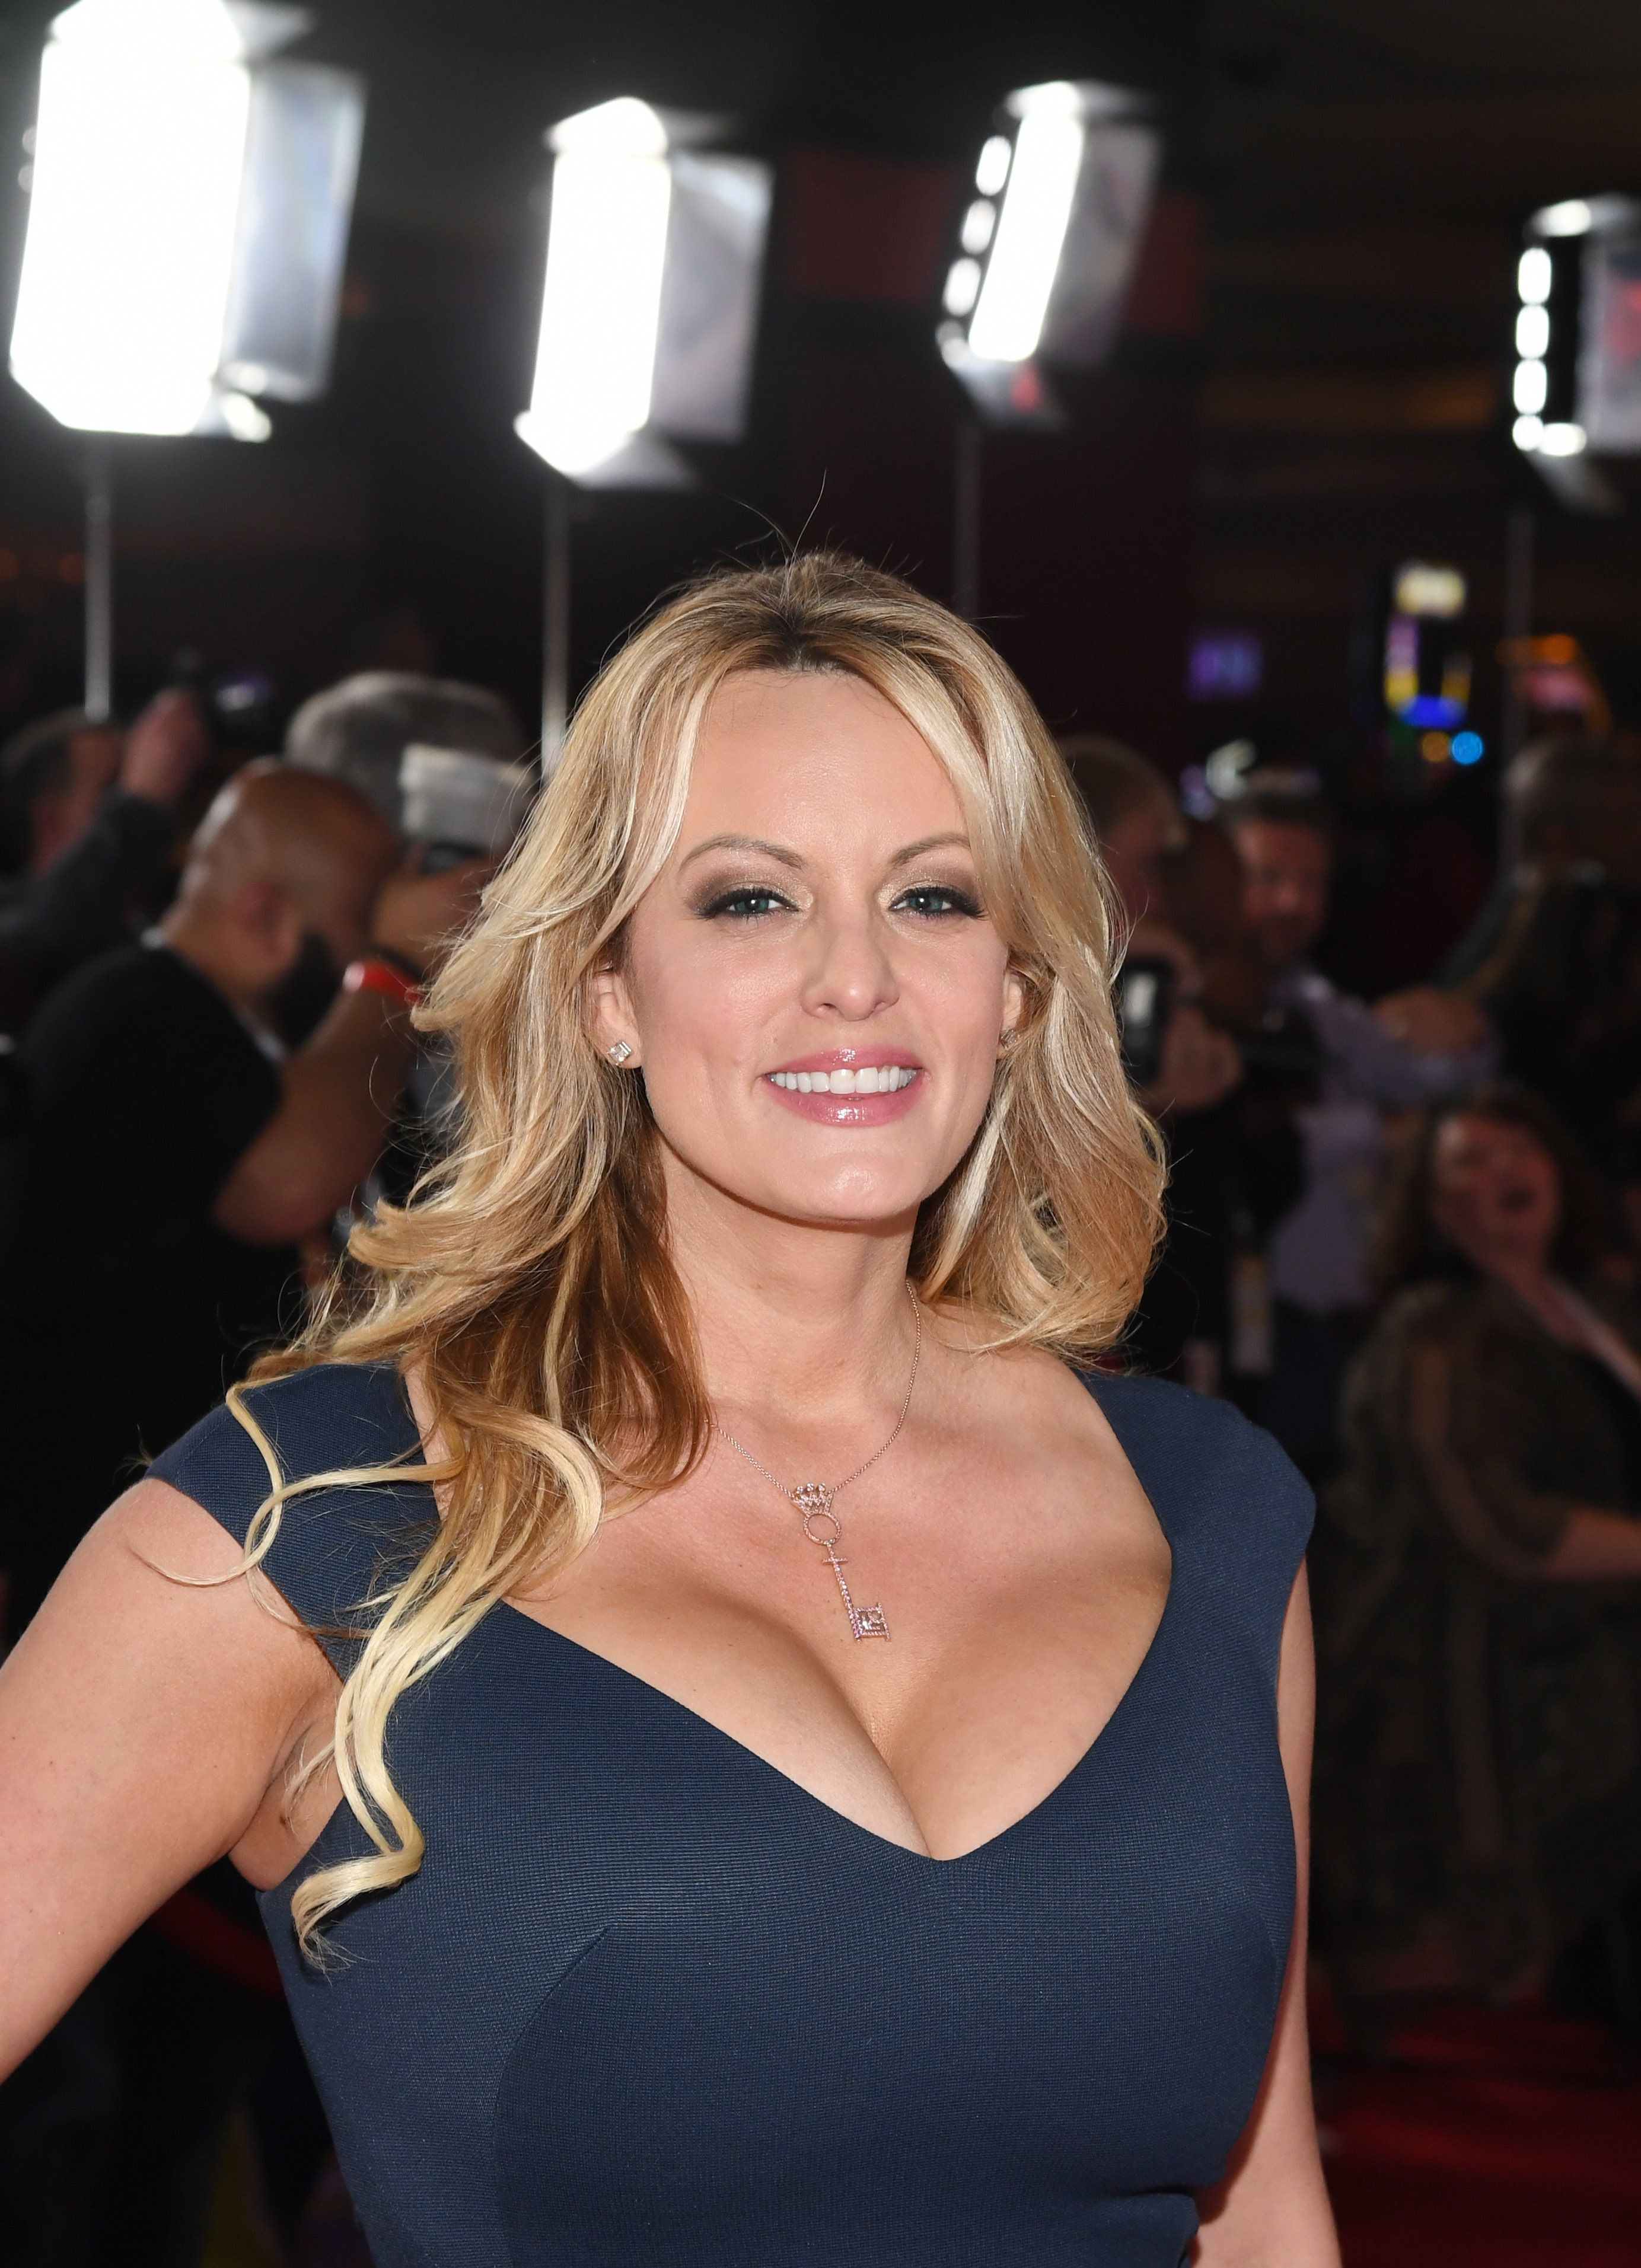 LAS VEGAS, NEVADA - JANUARY 26:  Adult film actress/director Stormy Daniels attends the 2019 Adult Video News Awards at The Joint inside the Hard Rock Hotel & Casino on January 26, 2019 in Las Vegas, Nevada.  (Photo by Ethan Miller/Getty Images)